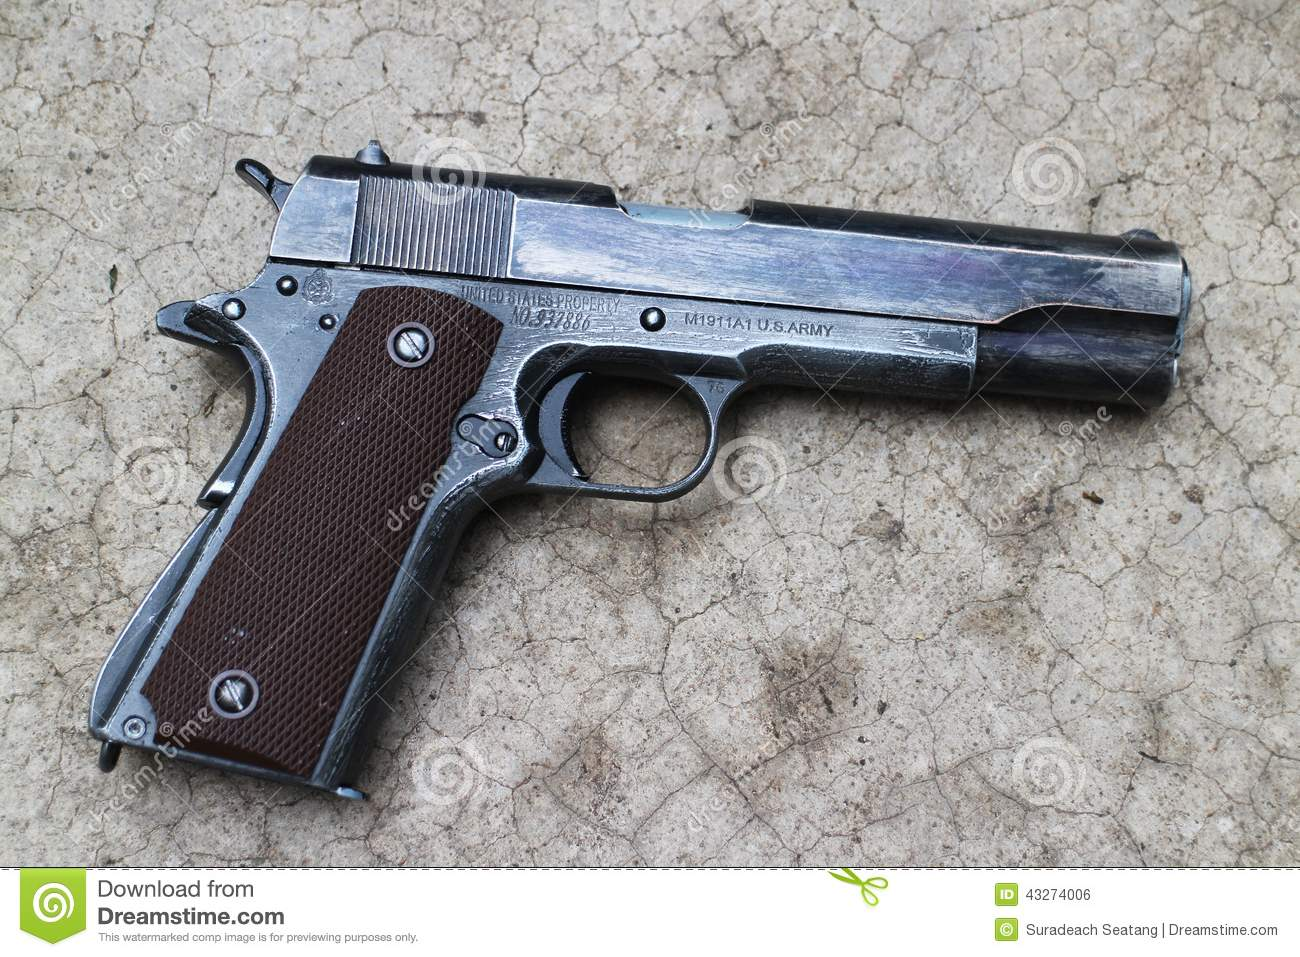 U.S. Army Pistol Colt 1911A1 Editorial Photo - Image: 43274006